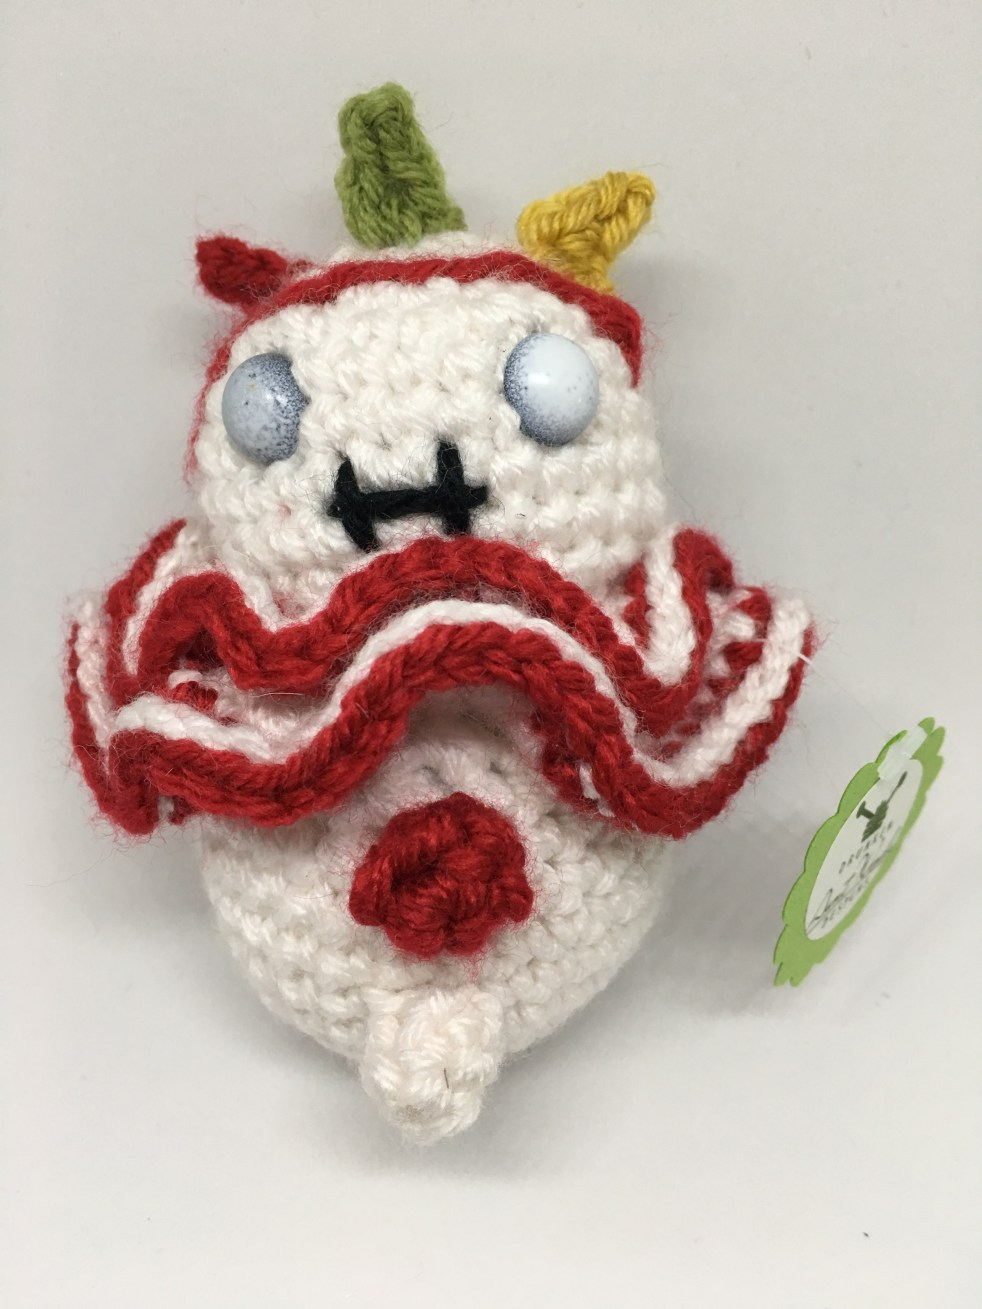 Crocheted Twisty the clown